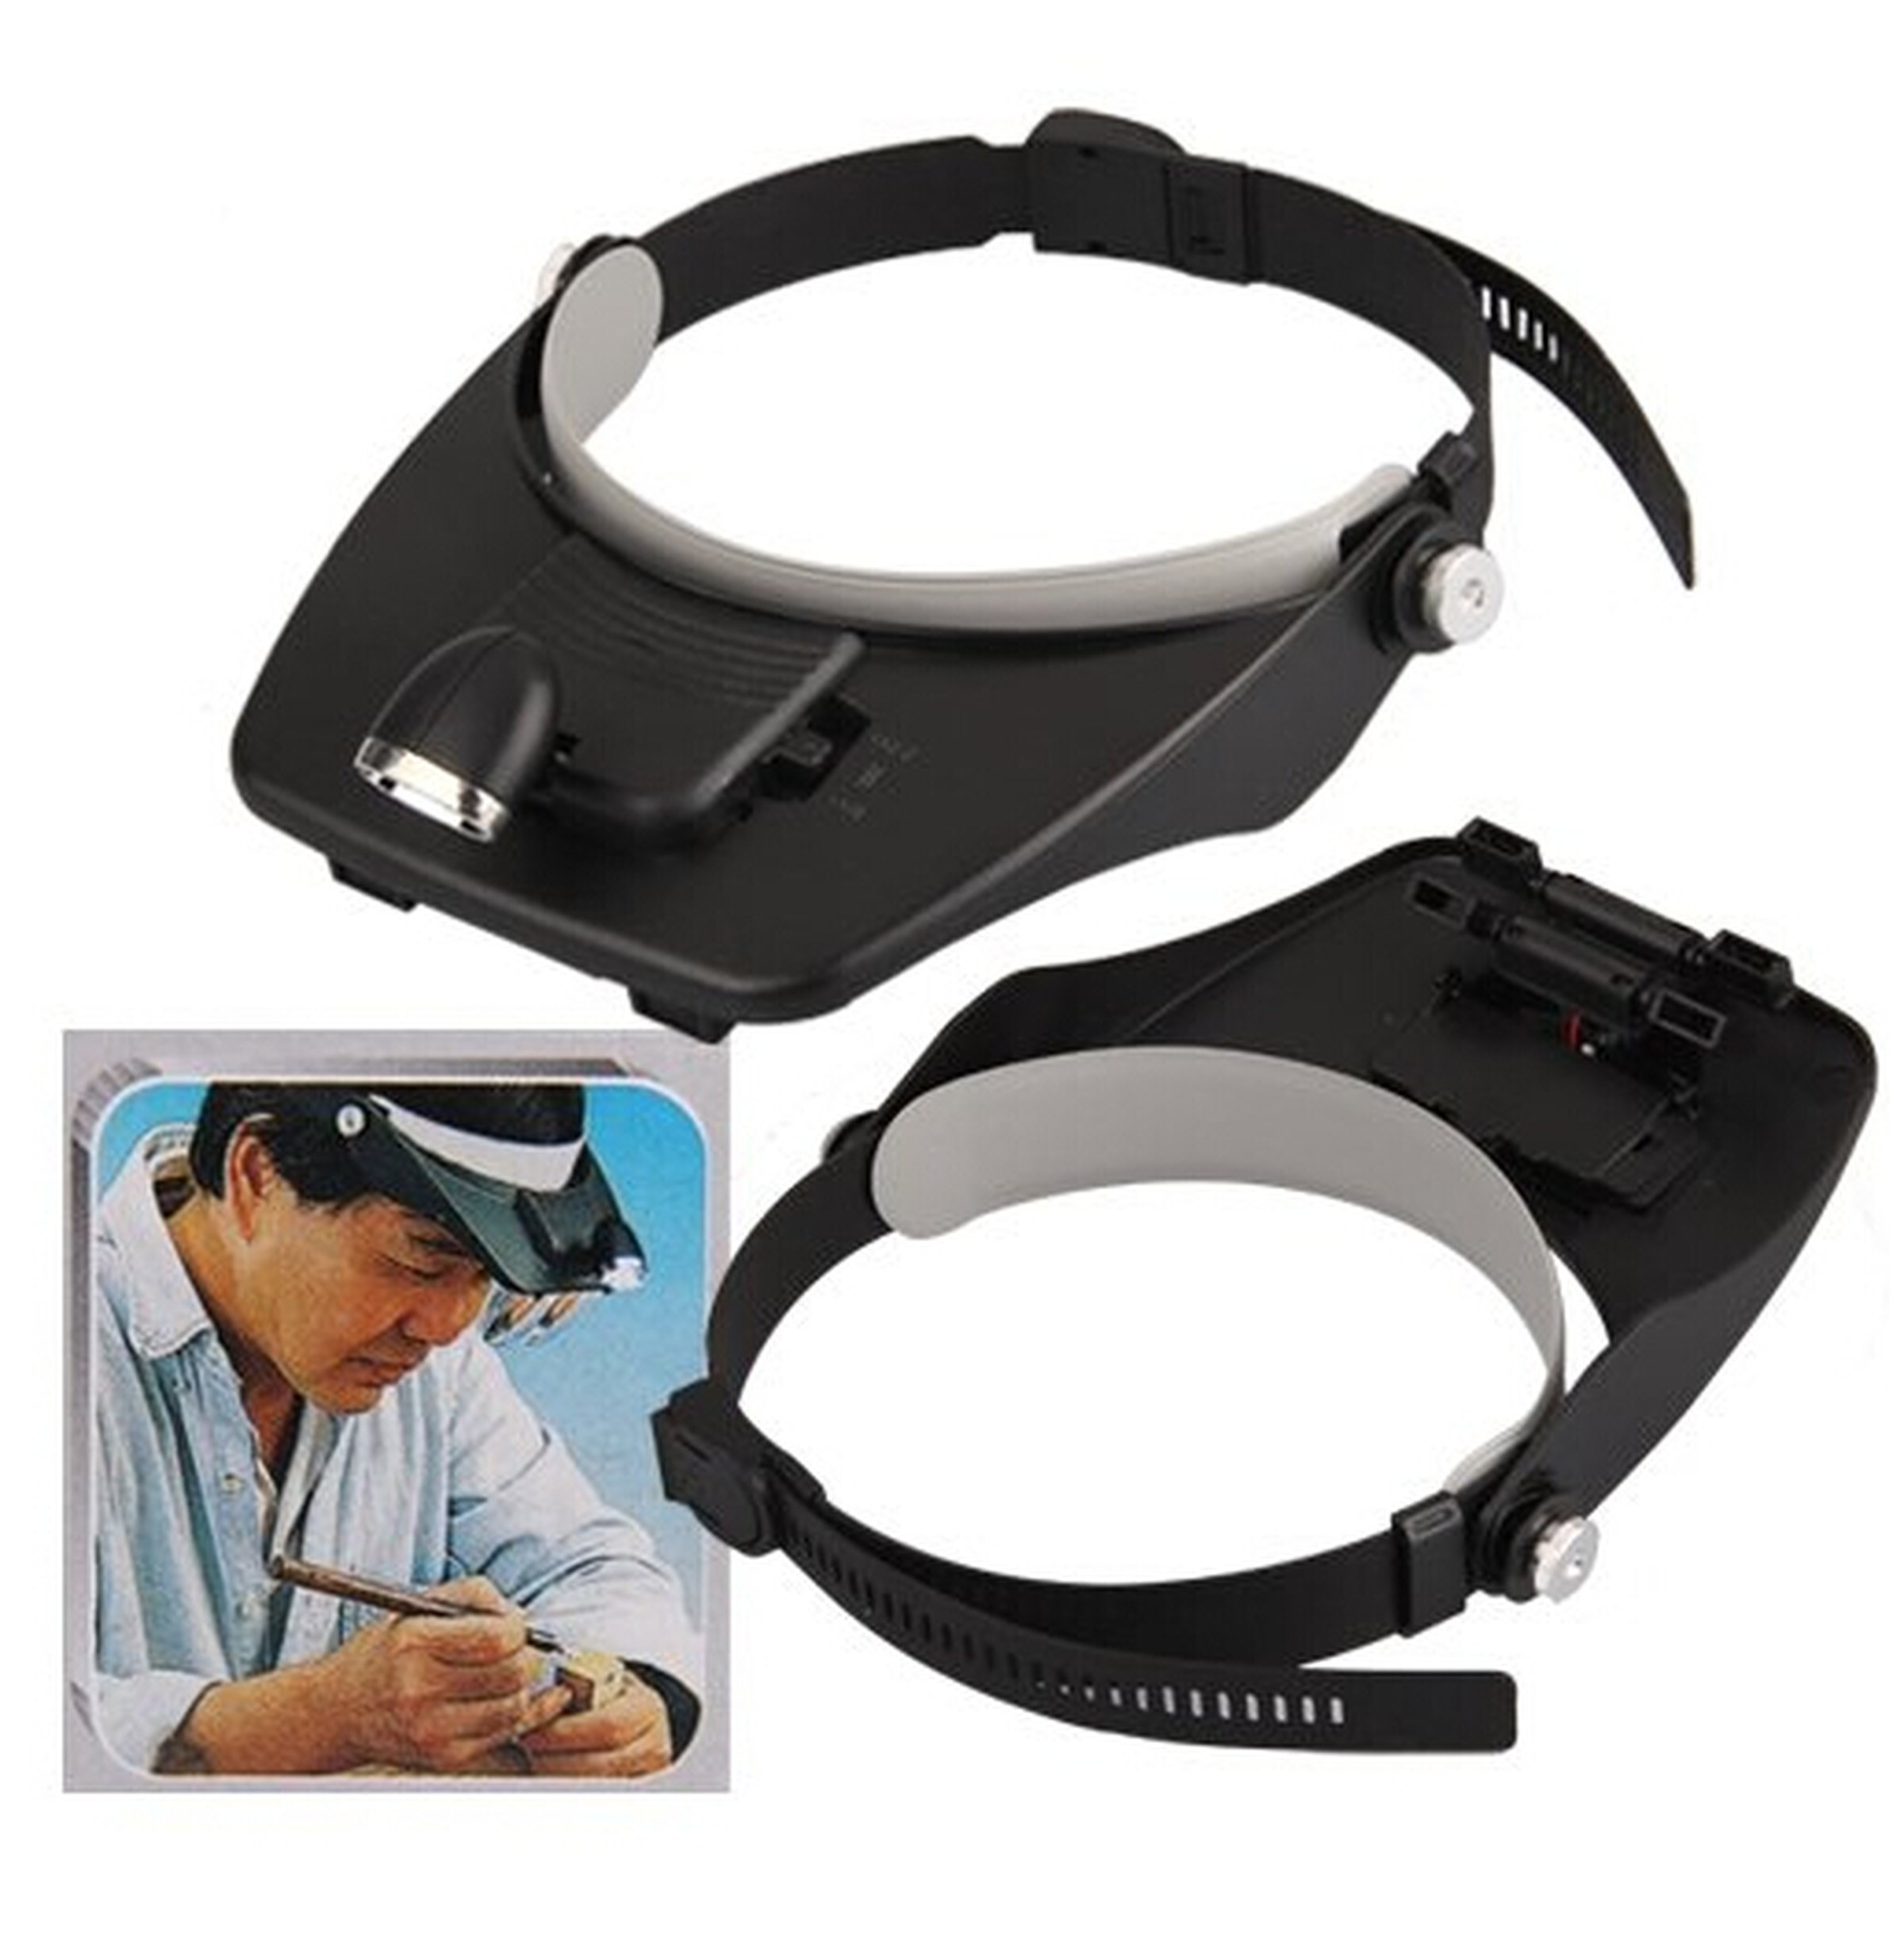 Led Head Light Magnifying Glass Loupe From Universbuy On